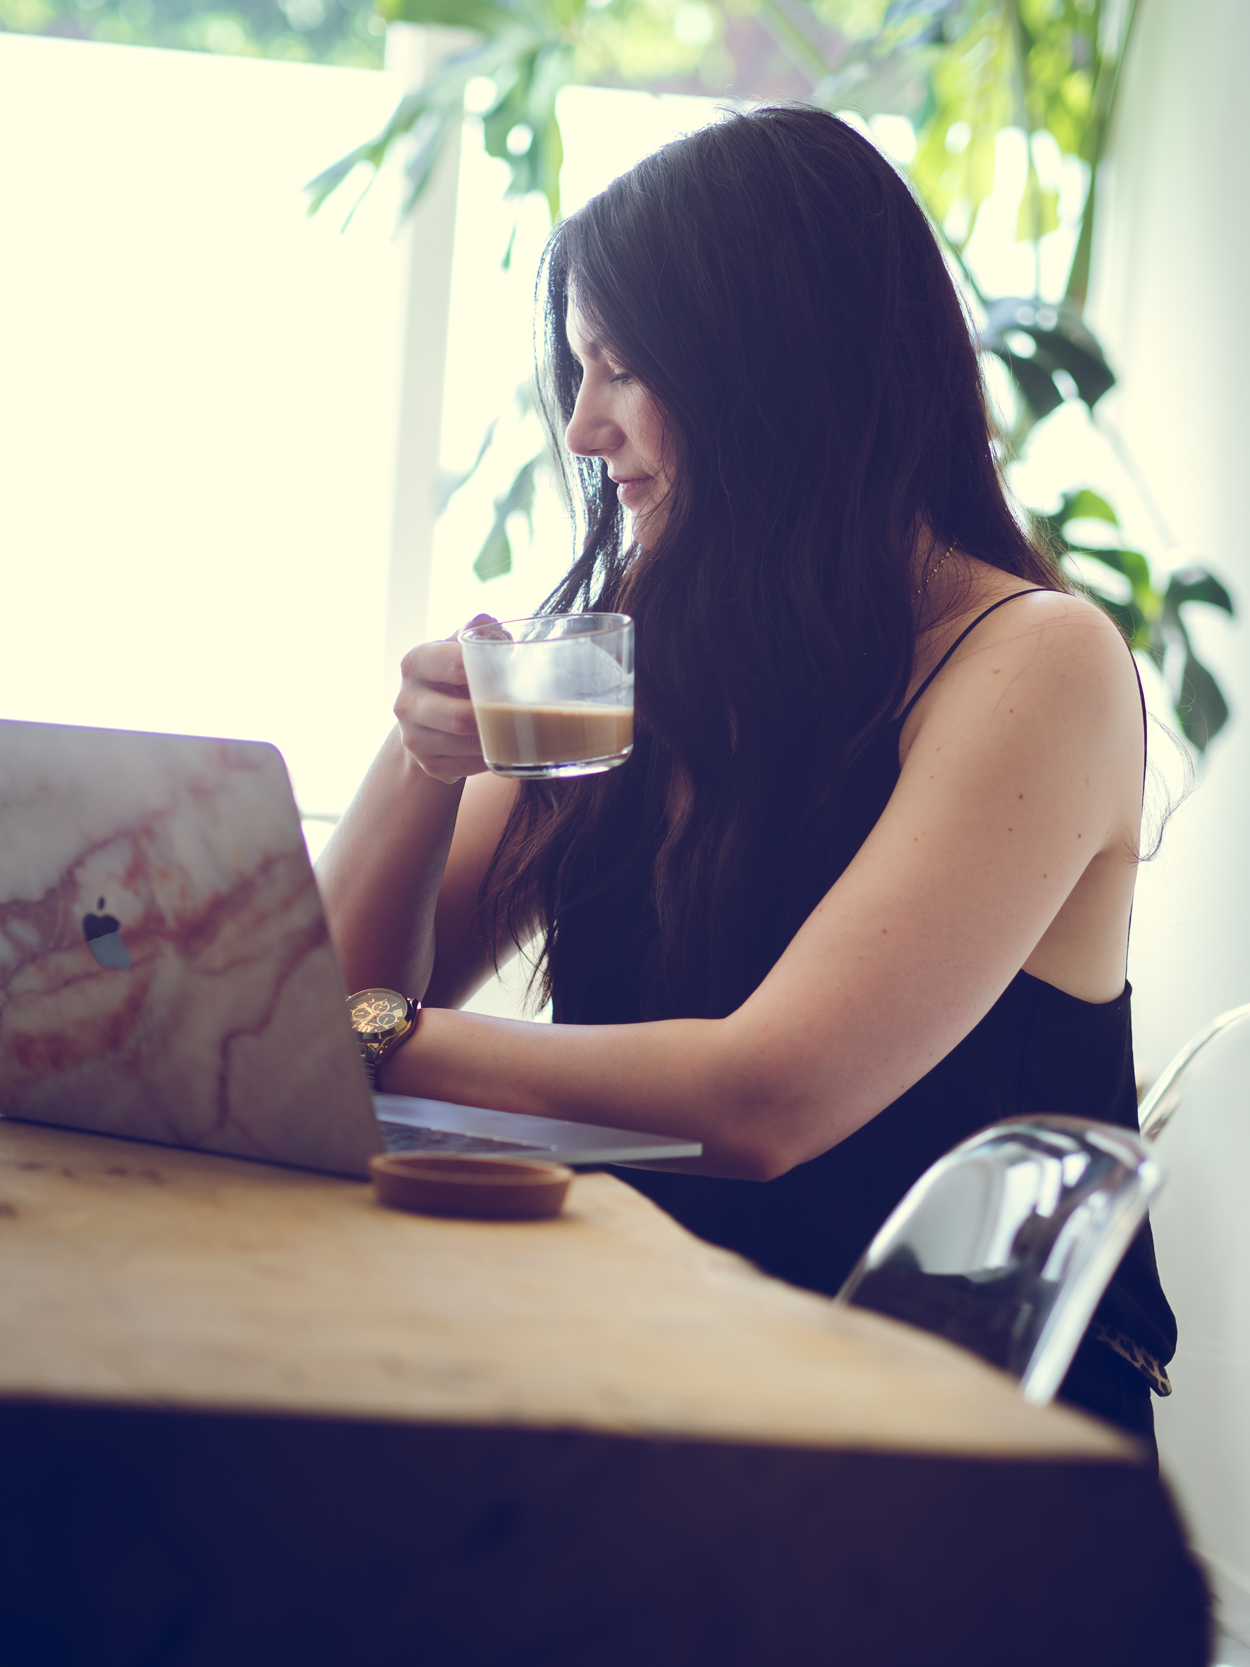 HOW TO COMBINE YOUR SIDE HUSTLE WITH A JOB AND OTHER RESPONSIBILITIES | THE CHIC ITALIAN | Making the side hustle life work for you, make you happy and bring in a little more money